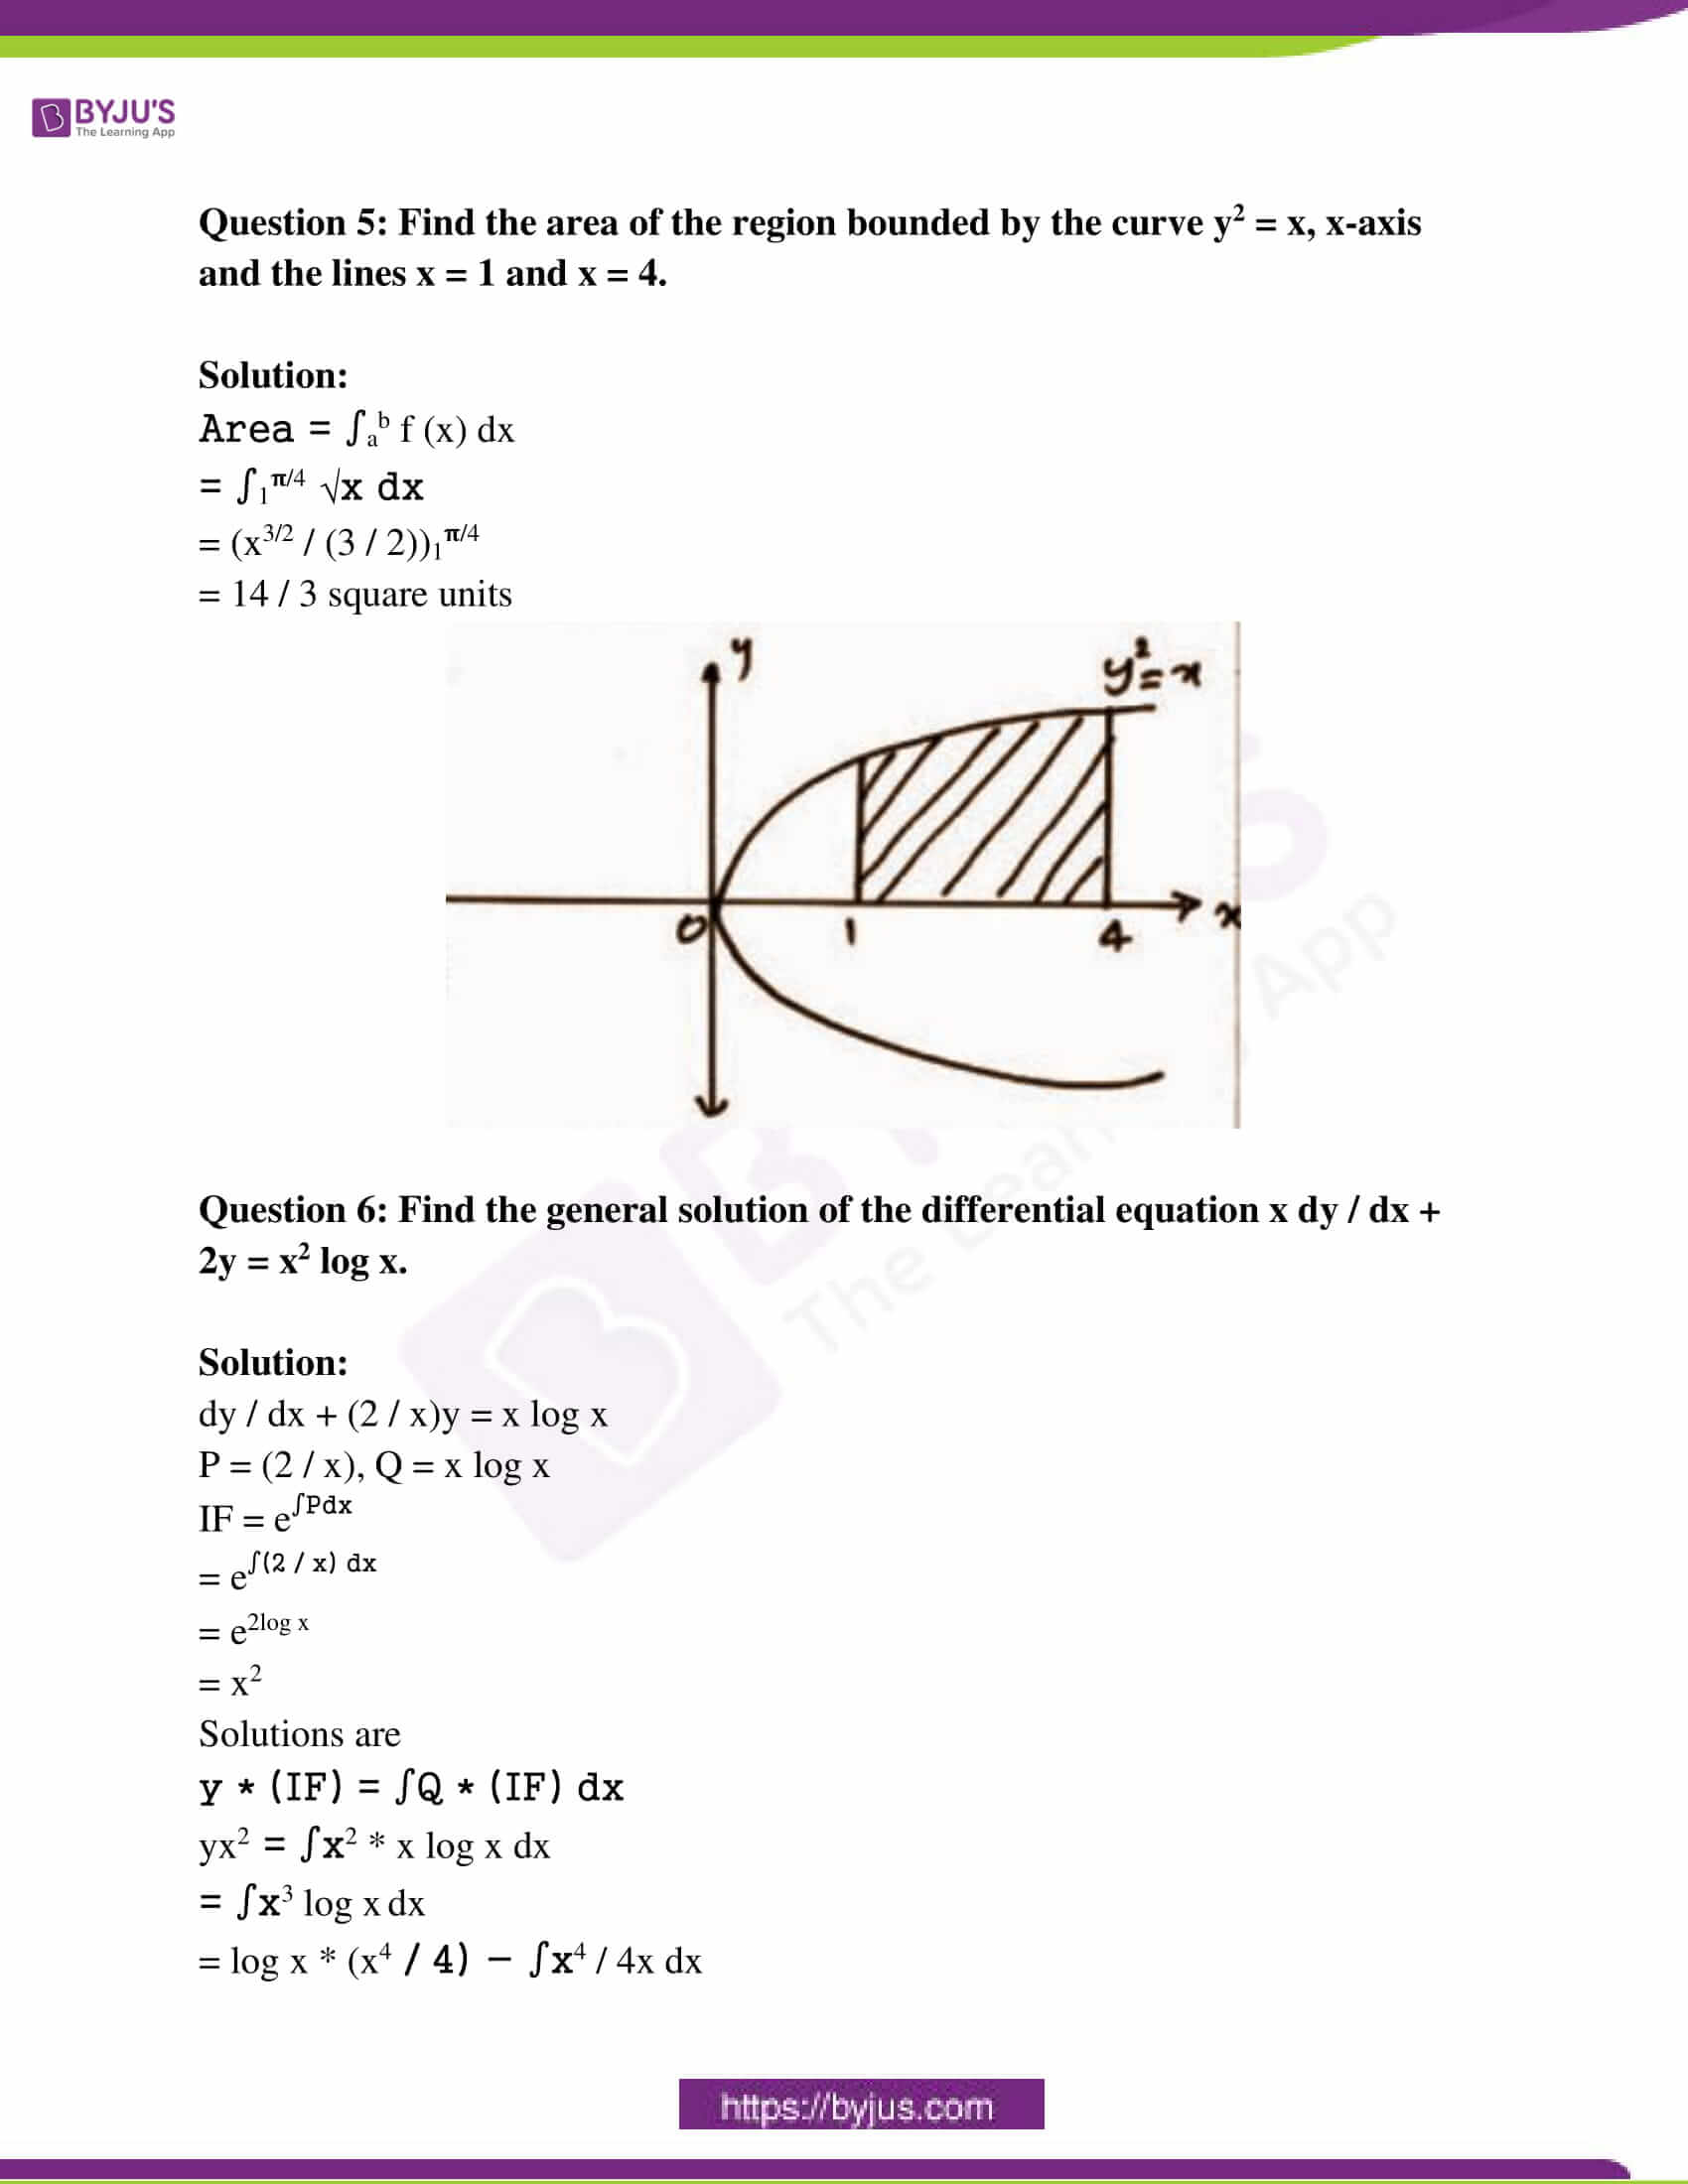 kerala class 12 examination question paper solutions march 2018 04